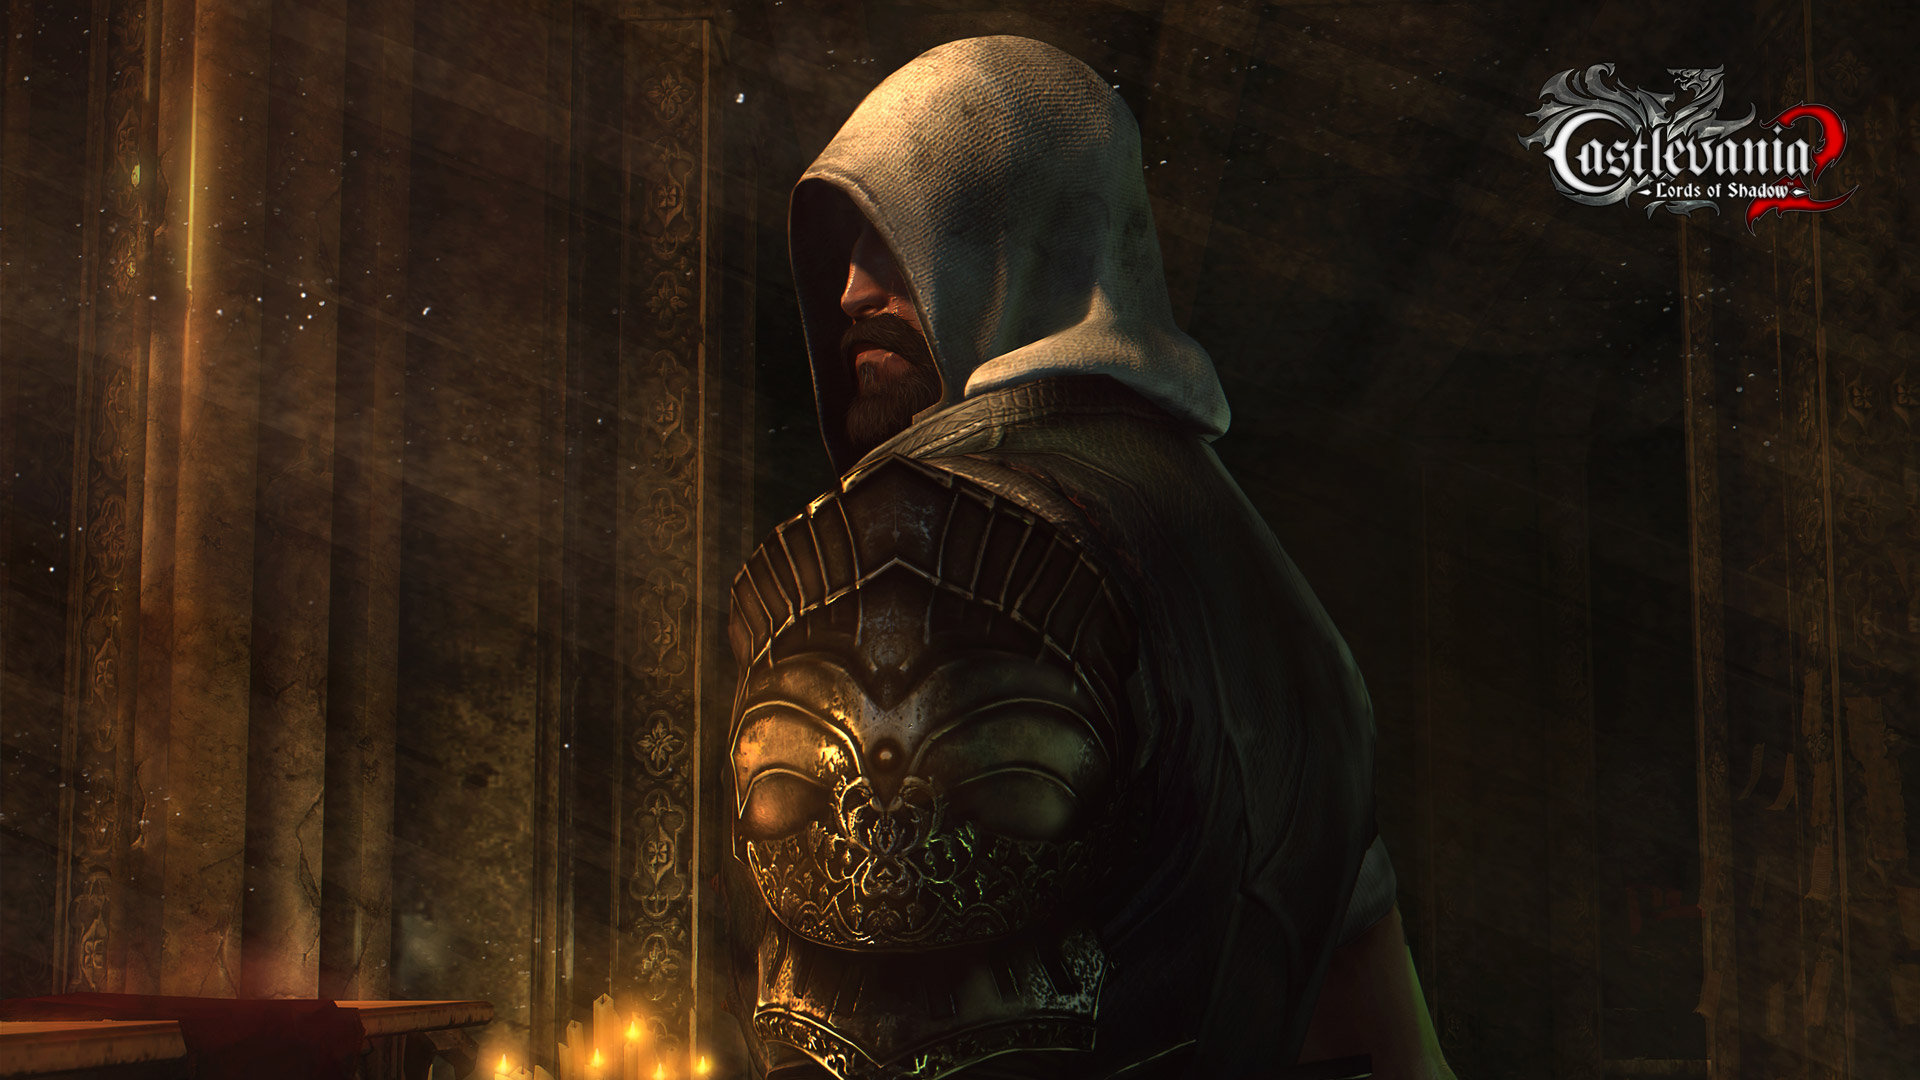 Free Castlevania: Lords of Shadow 2 Wallpaper in 1920x1080